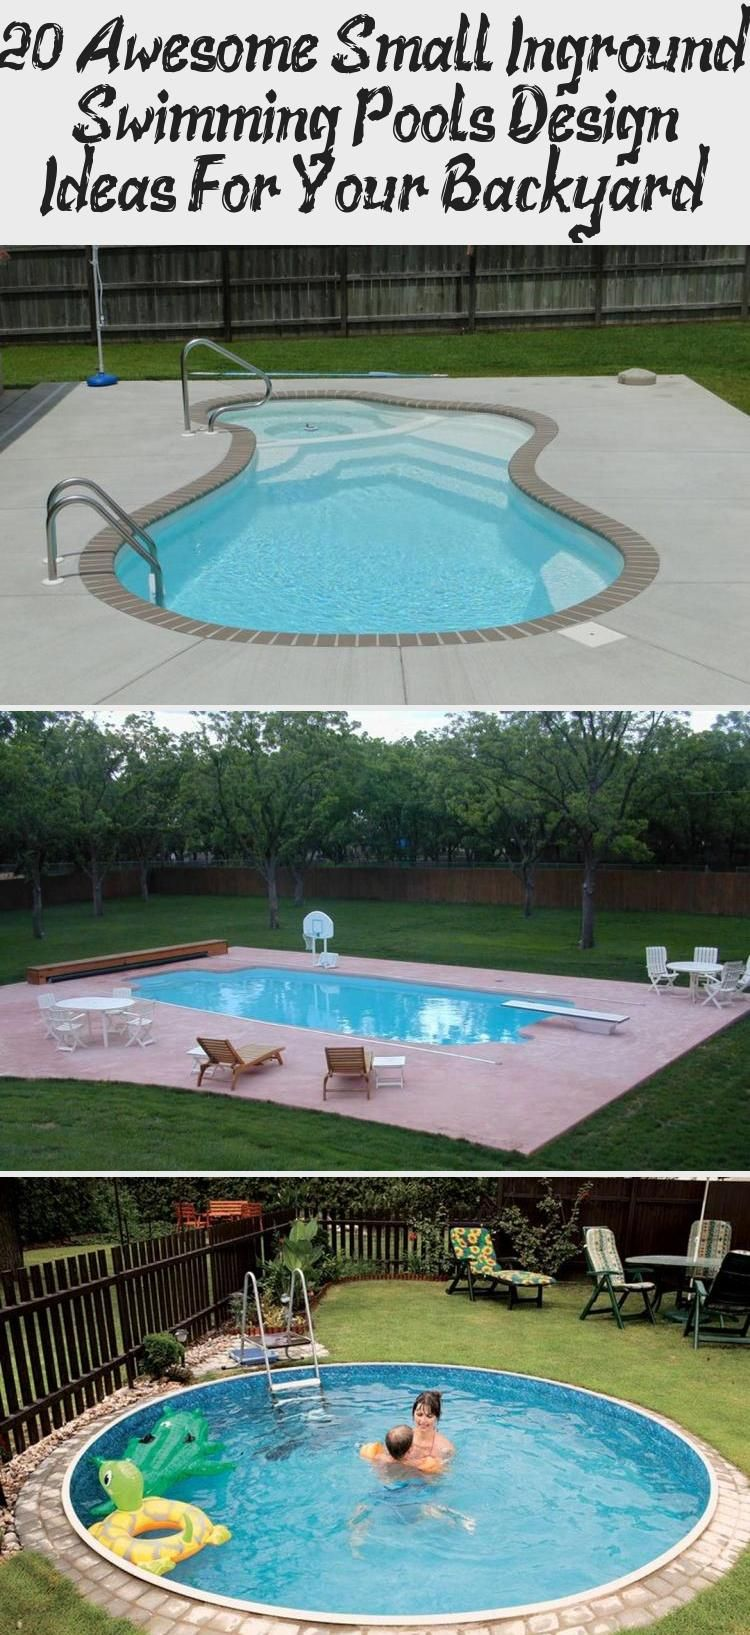 20 Awesome Small Inground Swimming Pools Design Ideas For Your